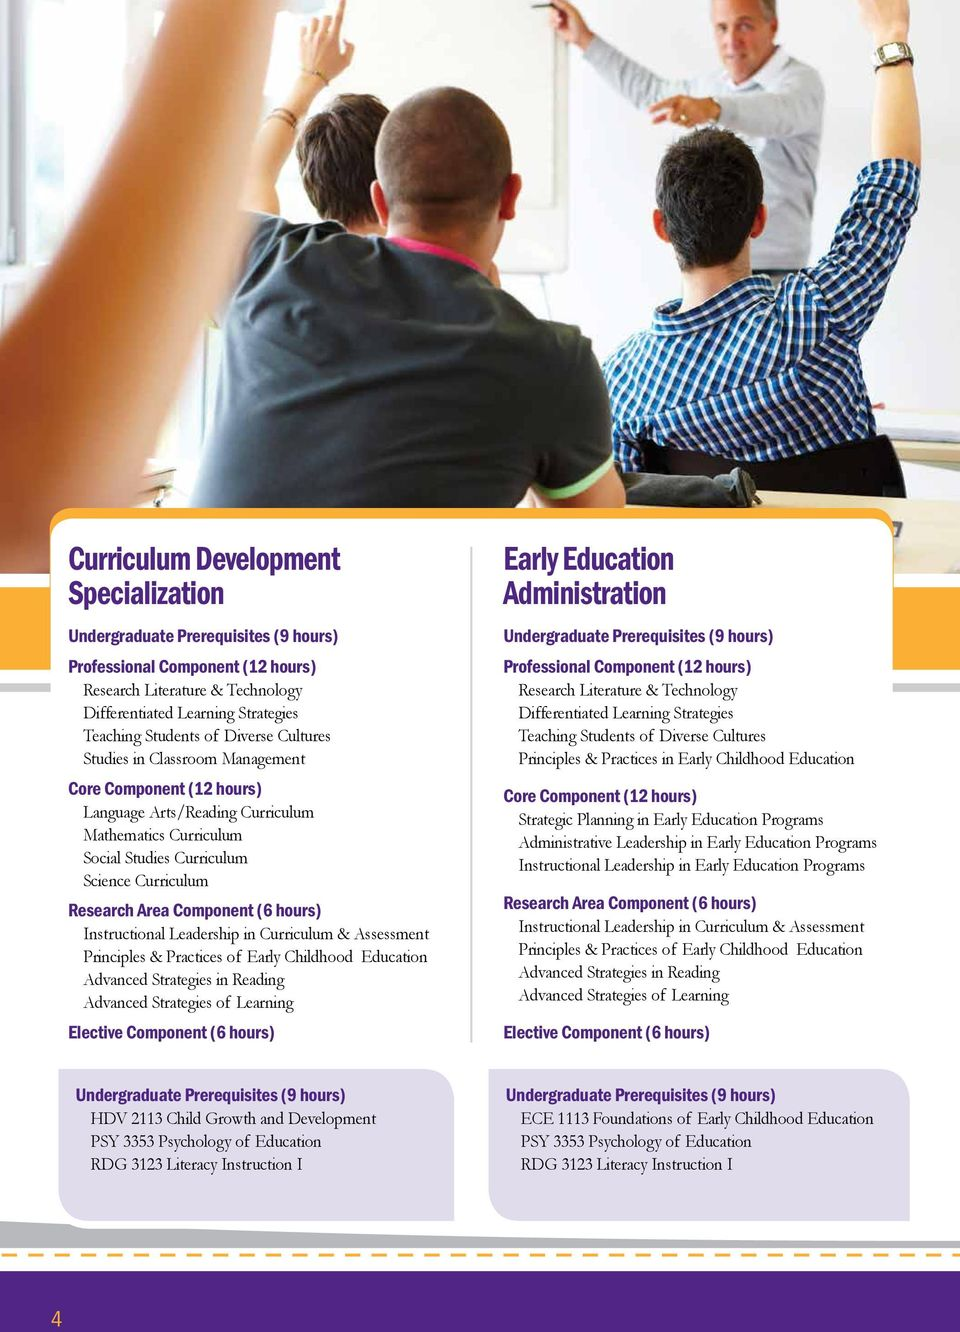 Leadership in Curriculum & Assessment Principles & Practices of Early Childhood Education Advanced Strategies in Reading Advanced Strategies of Learning Elective Component (6 hours) Early Education